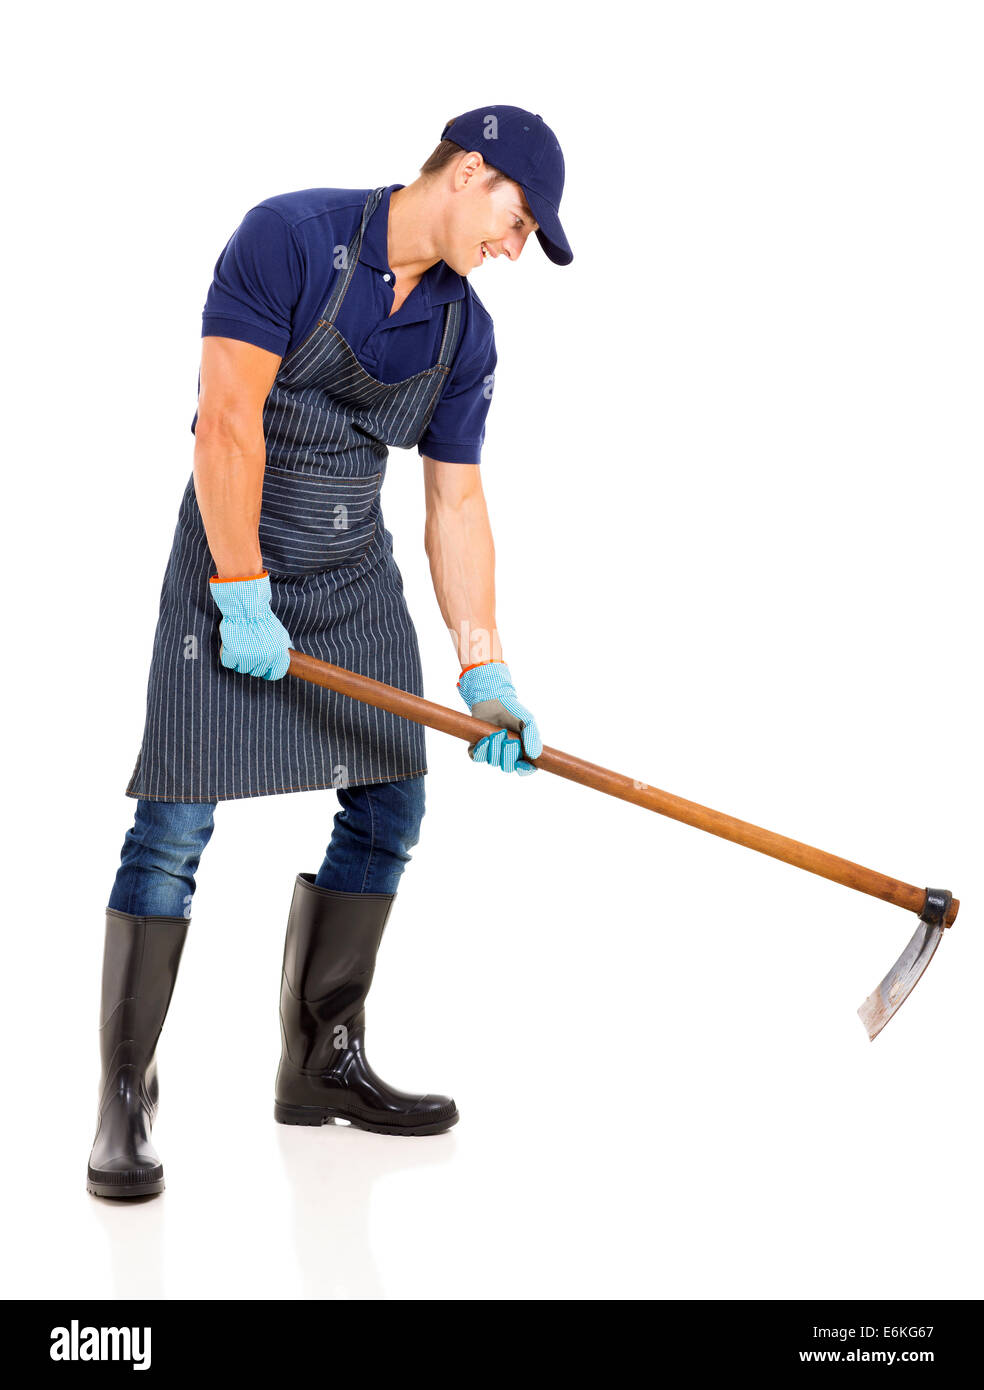 gardener working with a hoe isolated on white background - Stock Image